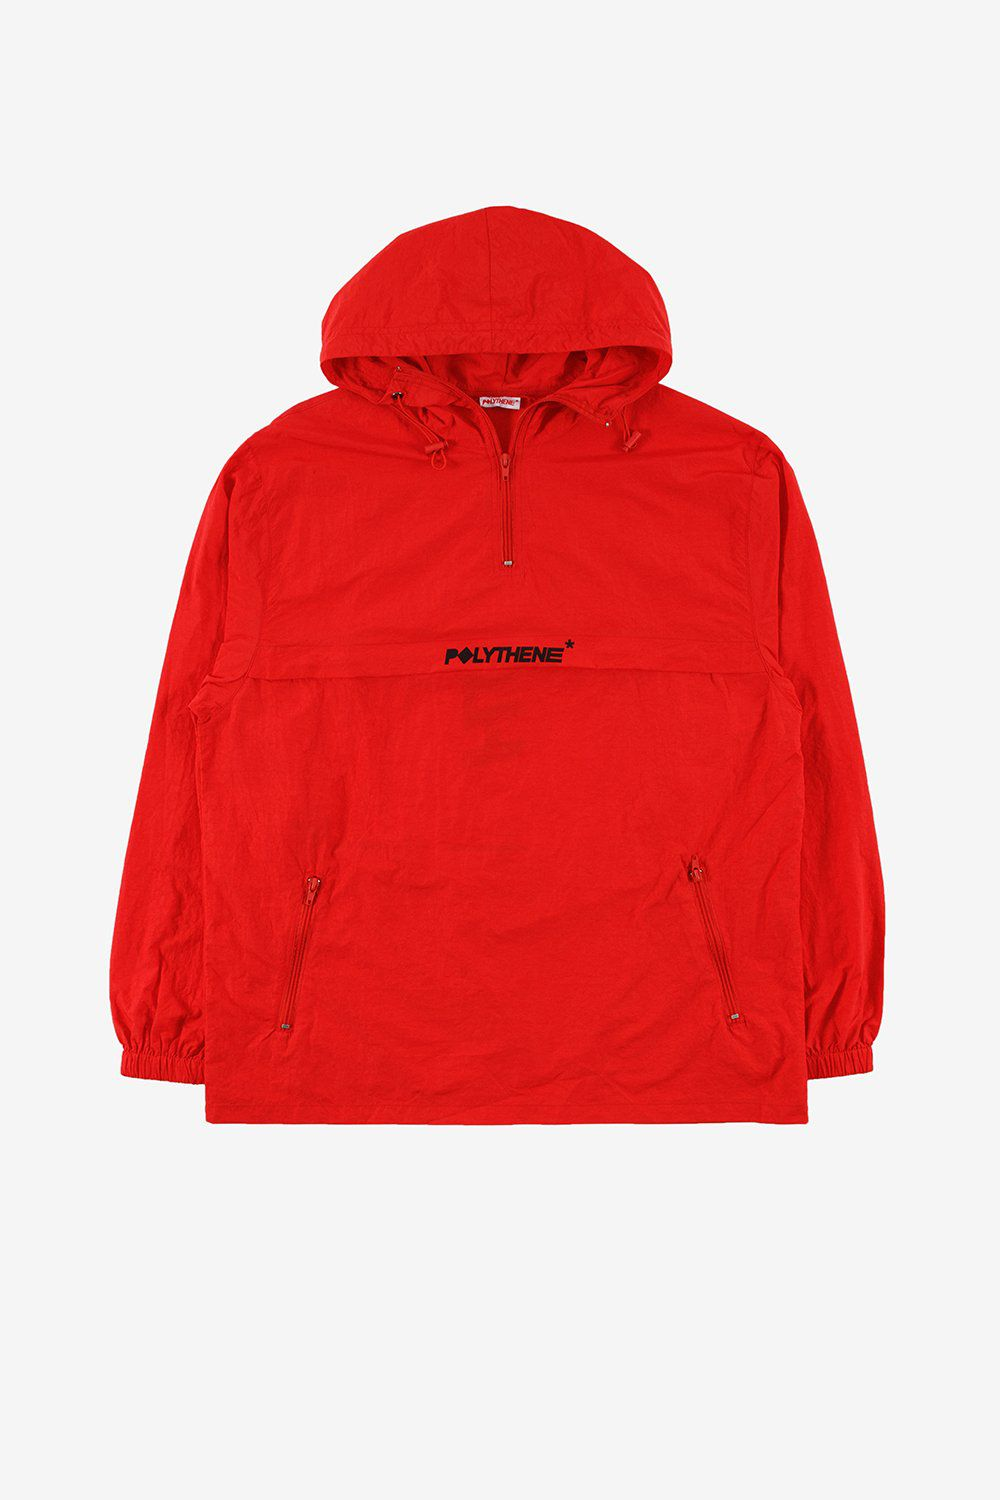 Polythene Optics Apparel Zipped Windbreaker Jacket Red